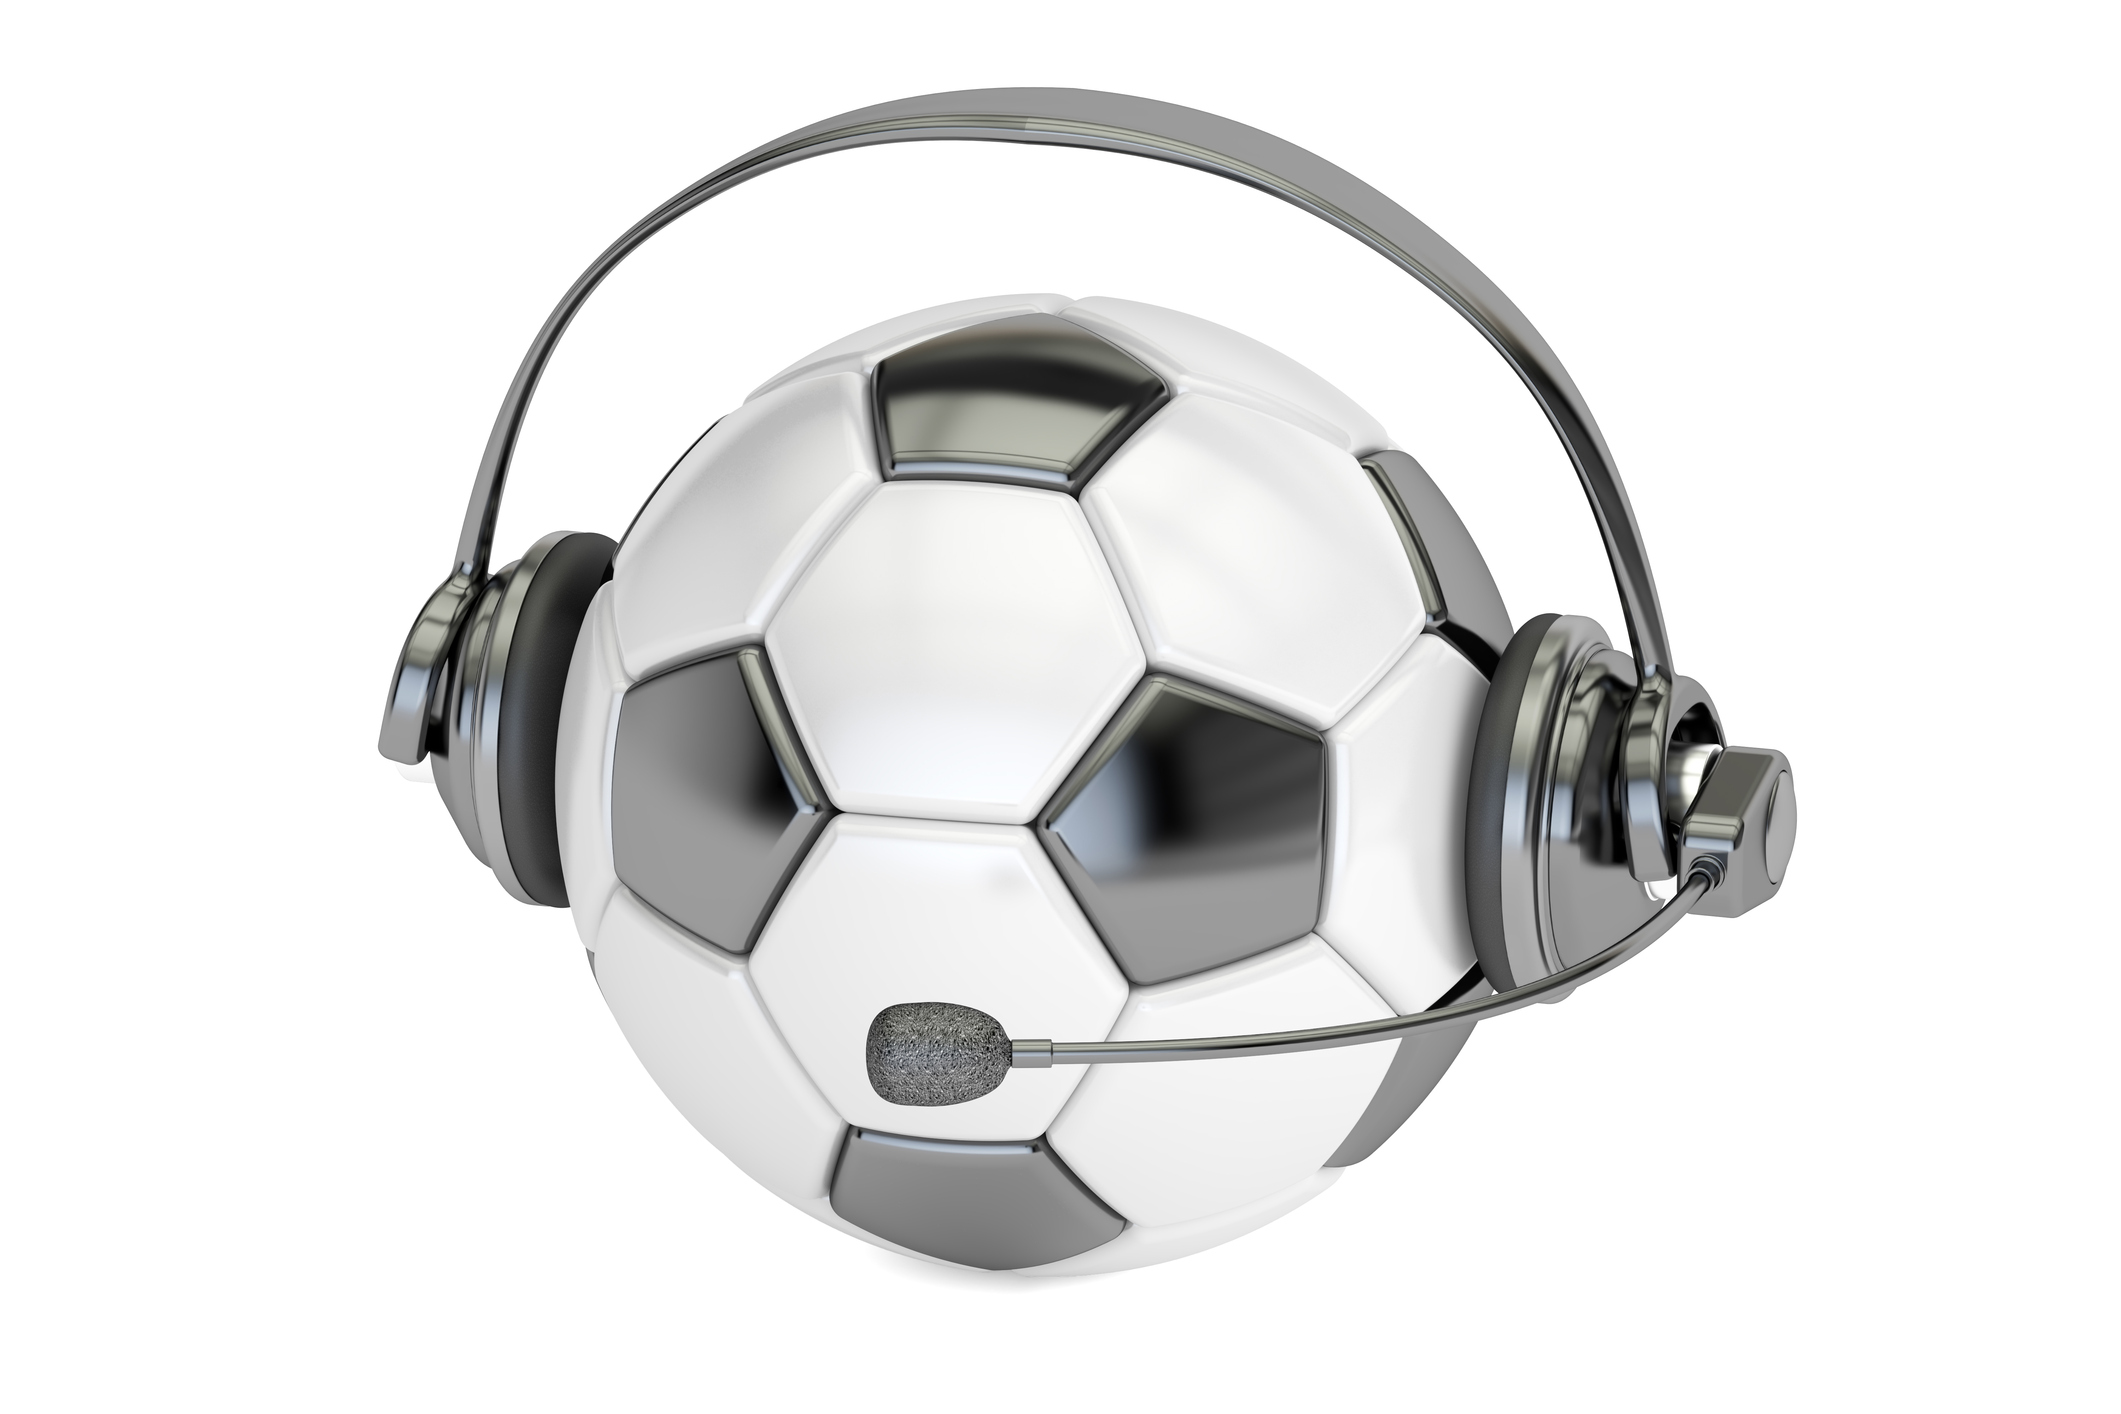 A football with a headset on